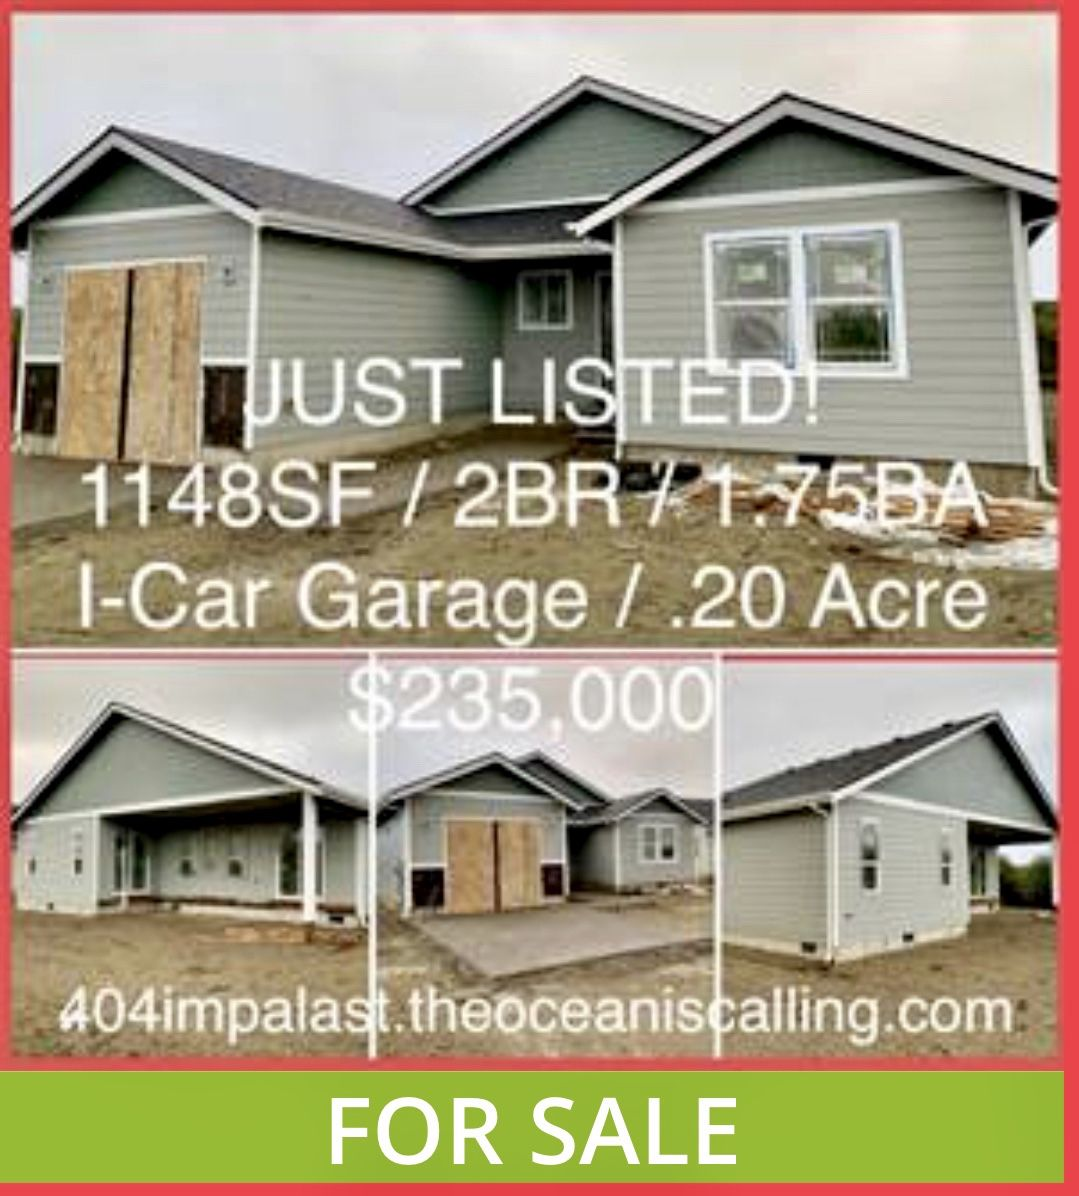 JUST LISTED! New Custom Built Cottage / 1148SF / 2BR / 1